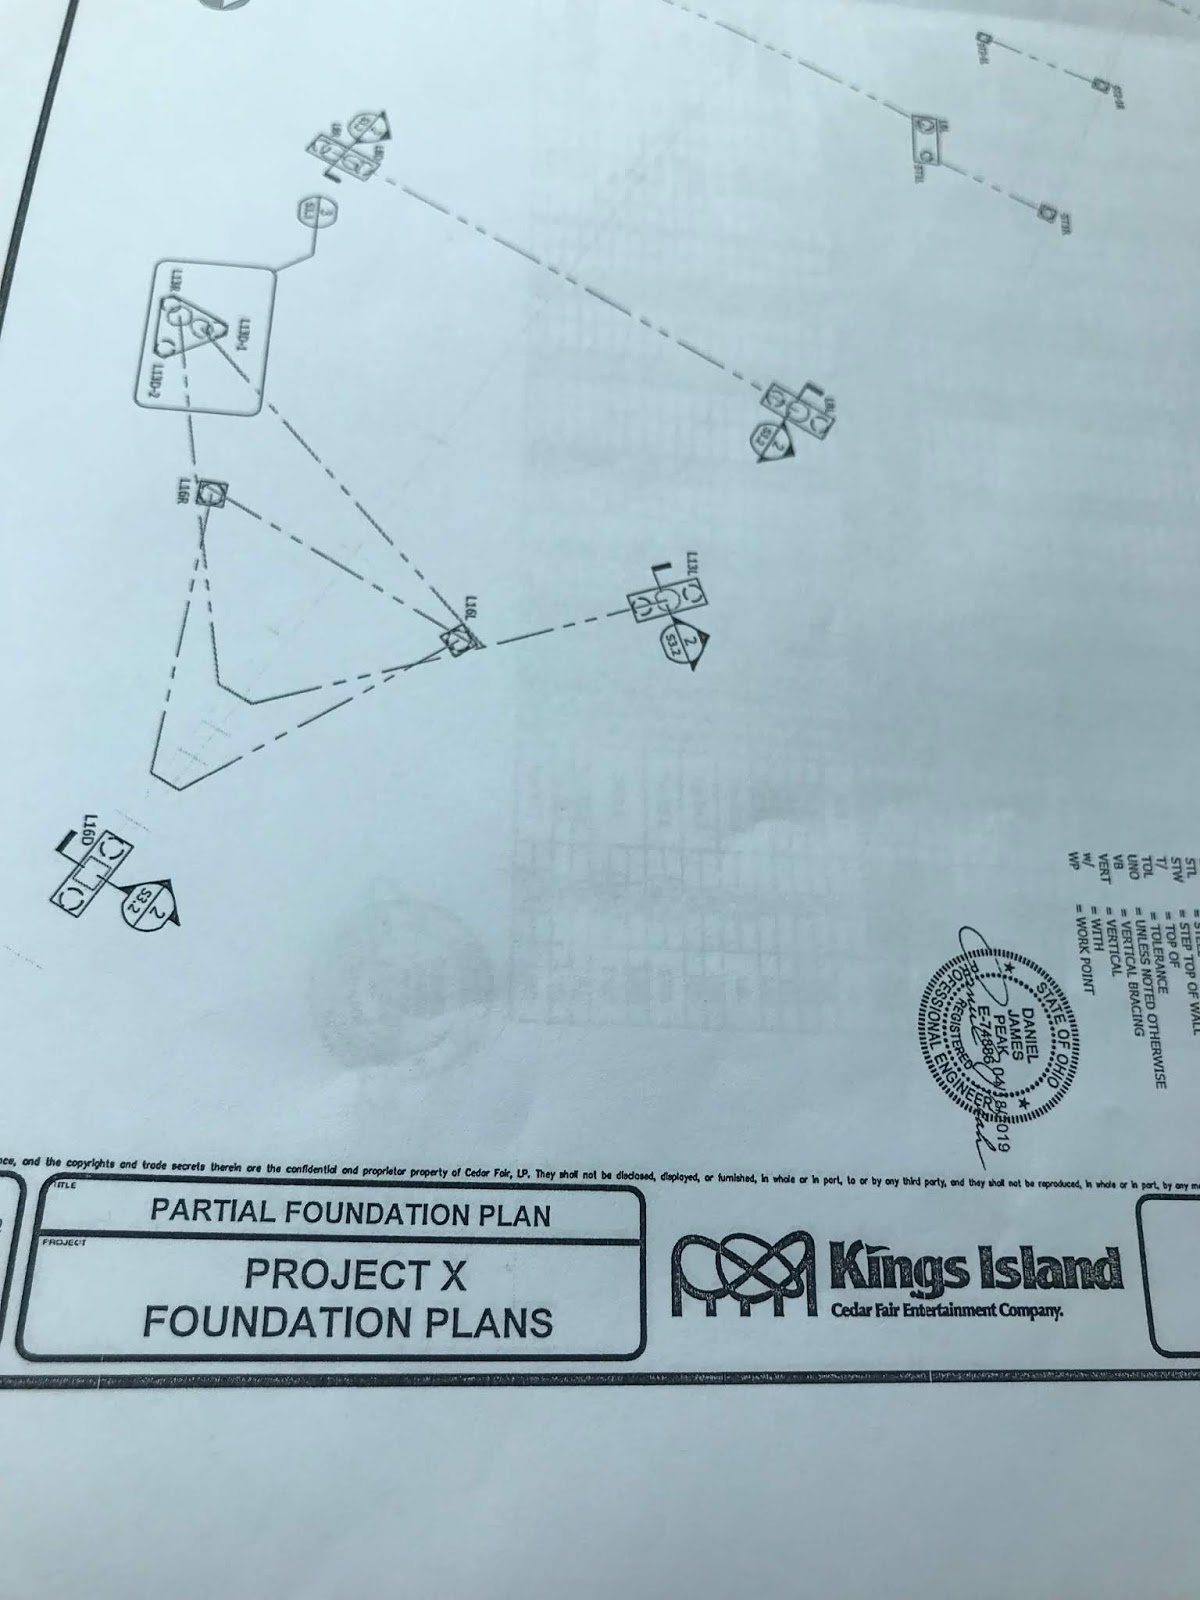 Top Foundations 2020.Insanity Lurks Inside Kings Island Project X For 2020